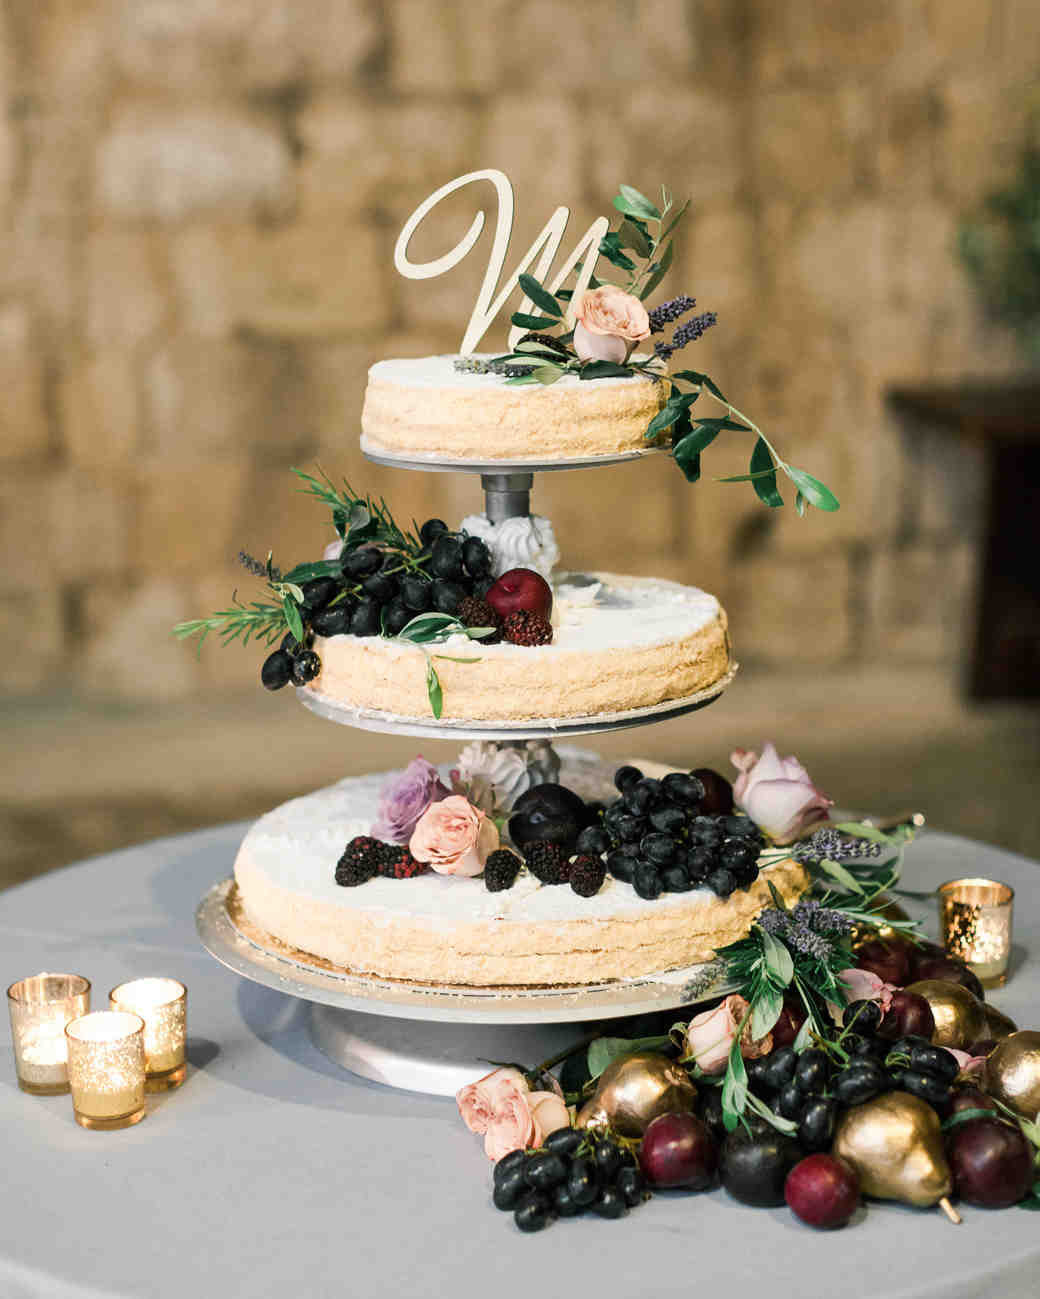 Fruity Wedding Cakes  42 Fruit Wedding Cakes That Are Full of Color and Flavor